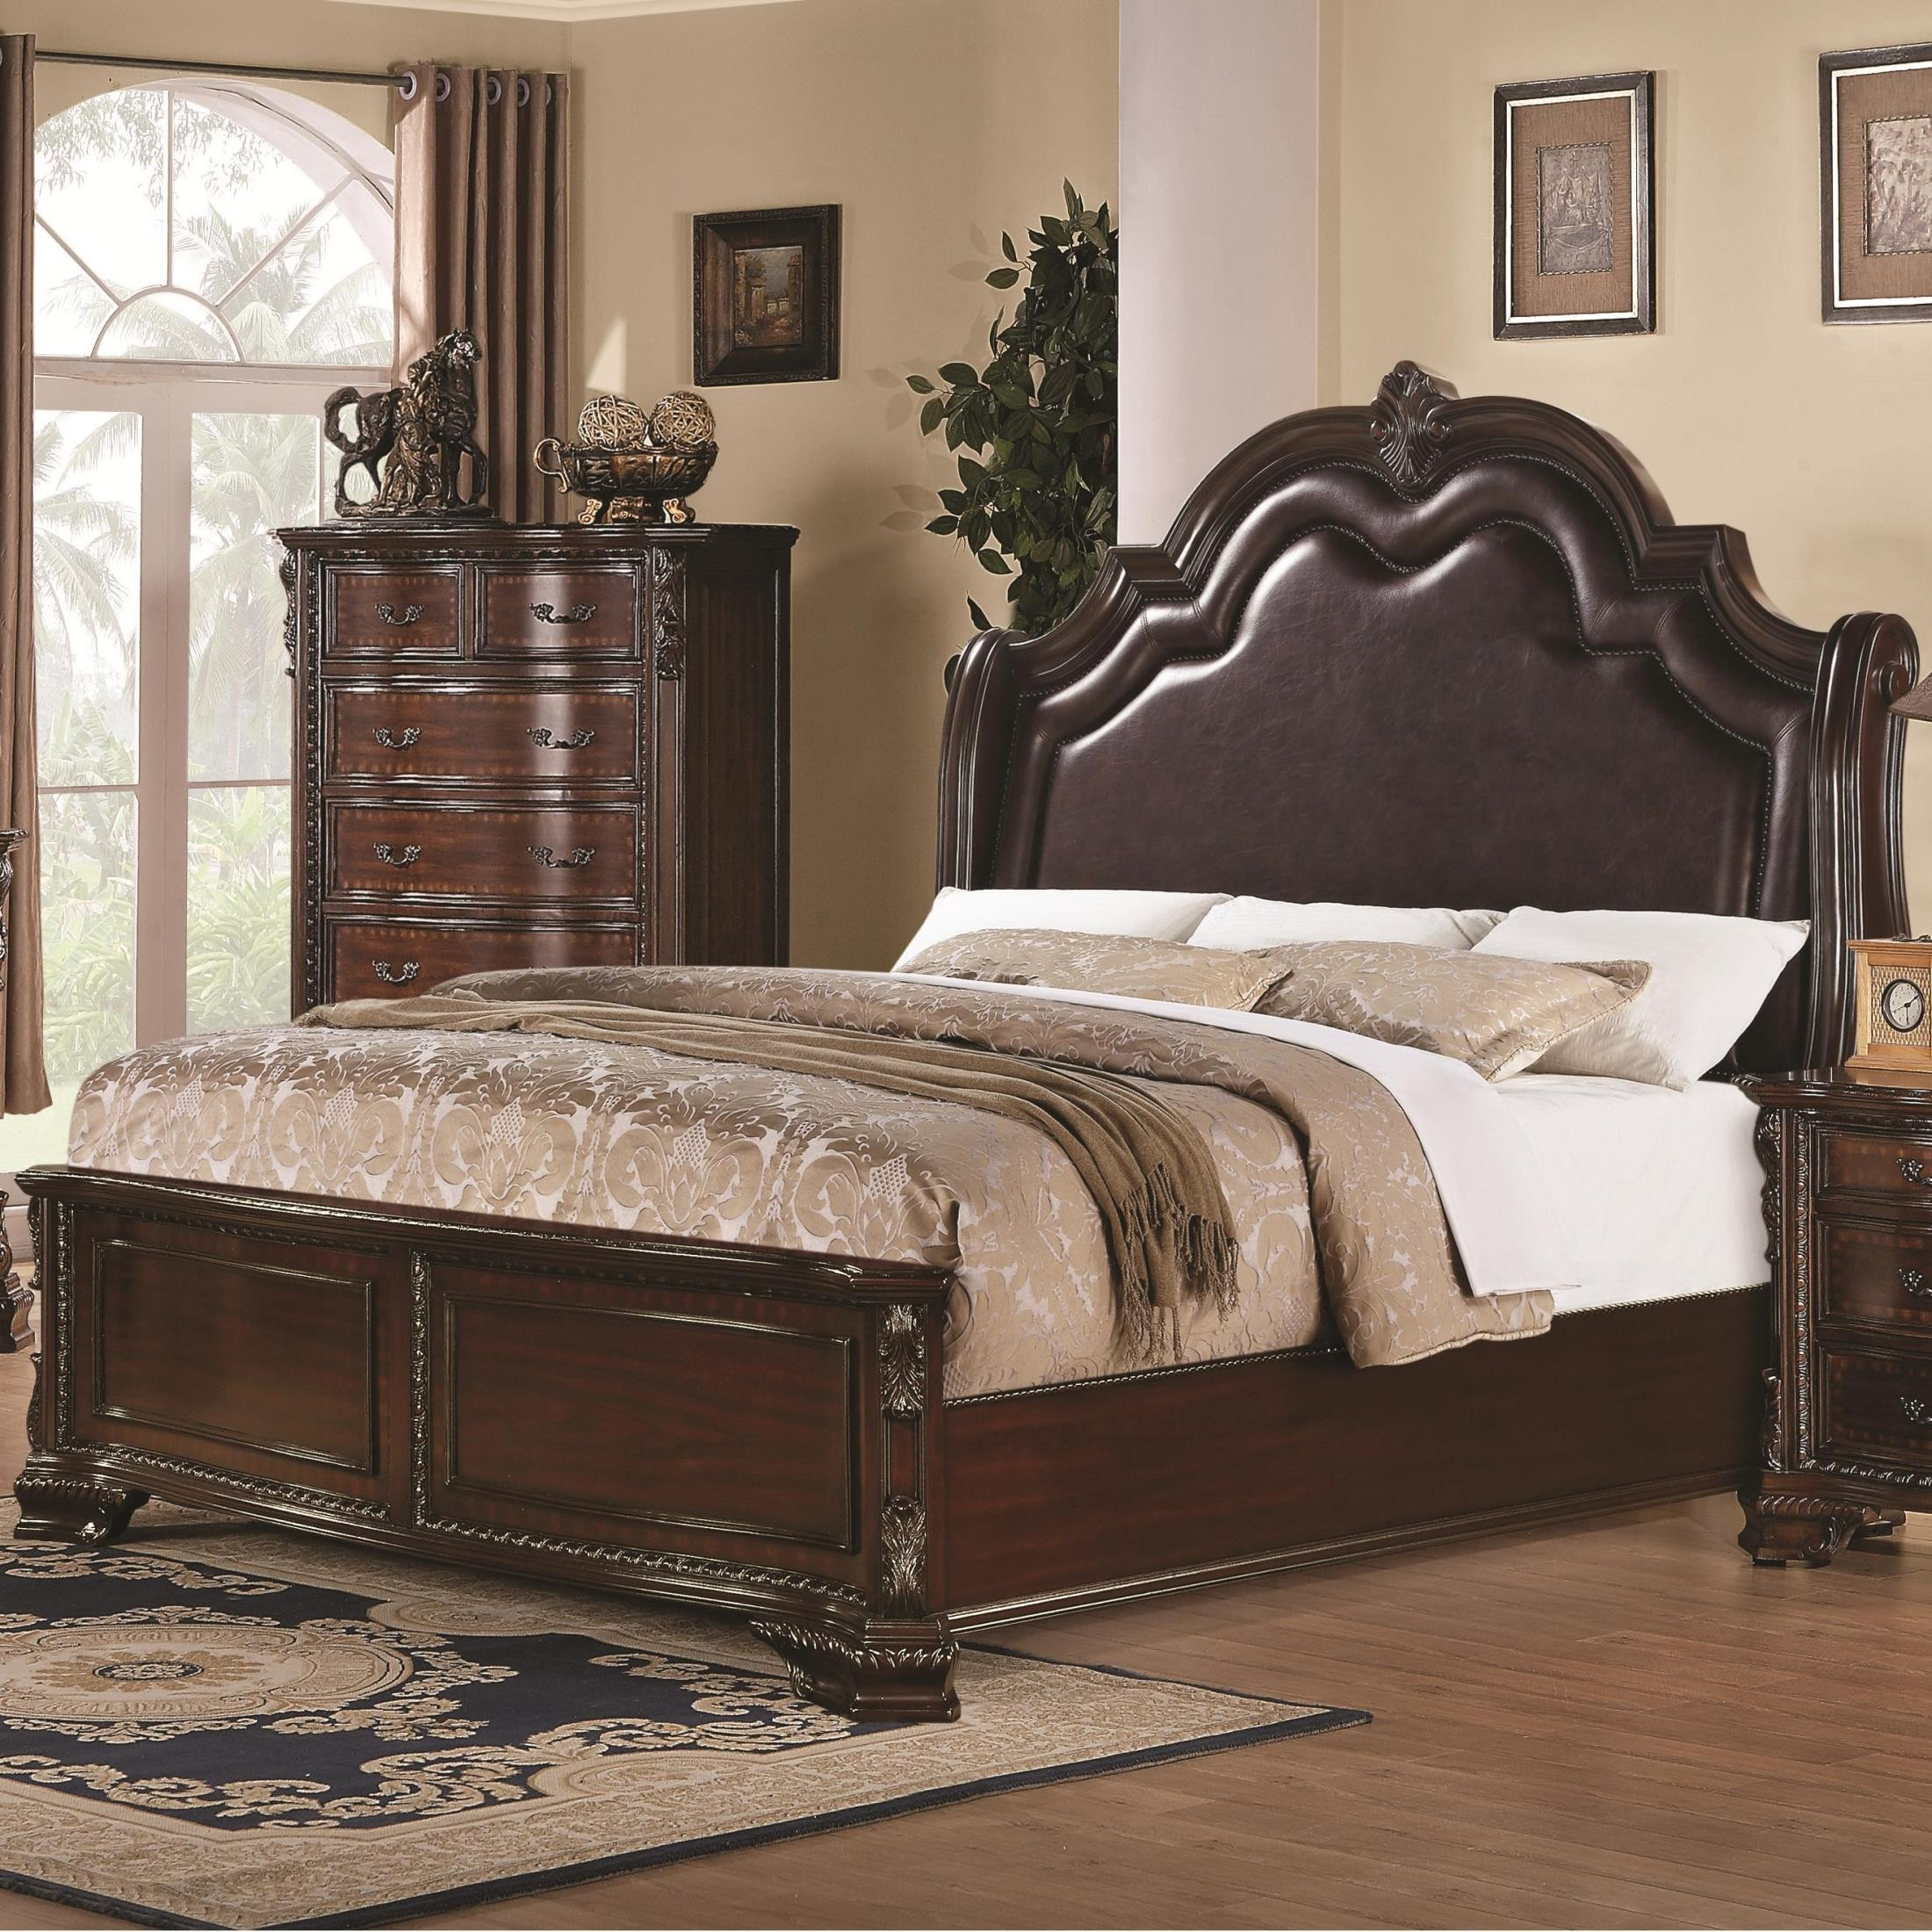 Maddison Panel Bedroom Set From Coaster (202261)